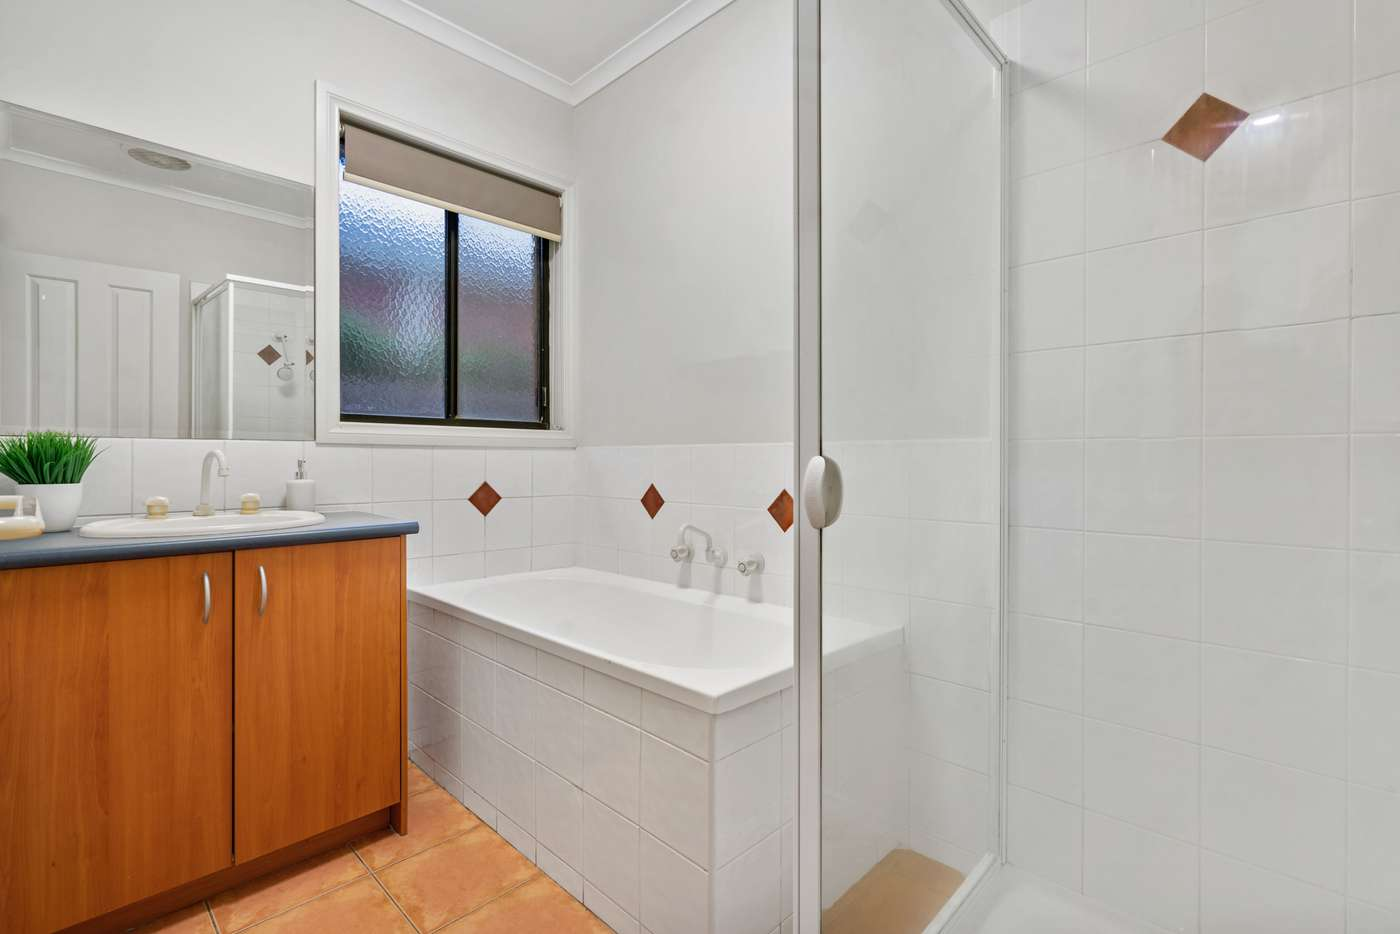 Sixth view of Homely house listing, 3 Clearview Court, Hoppers Crossing VIC 3029